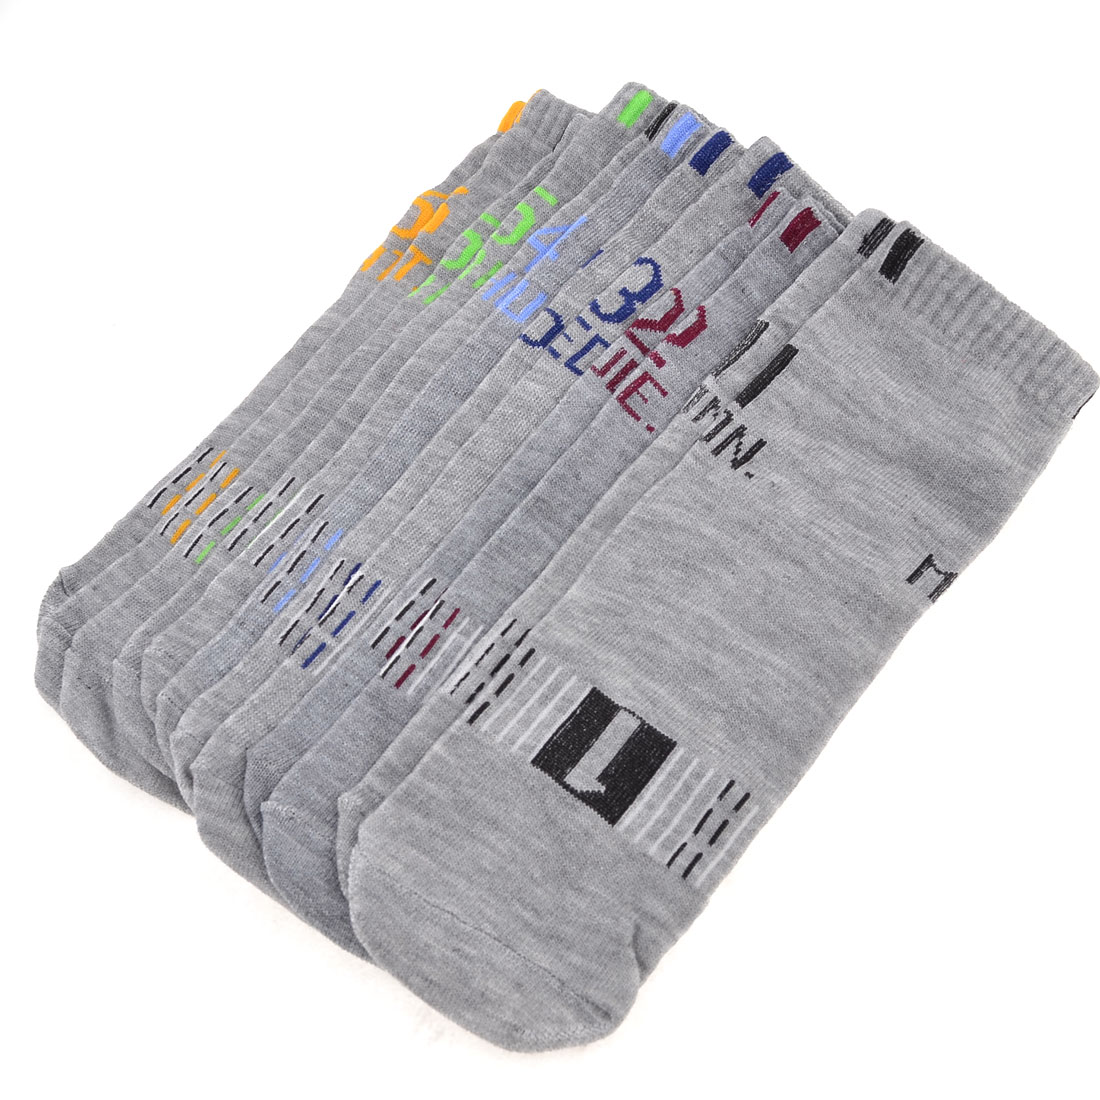 6 Pair Multicolor Numbers Pattern Stretchy Stockings Week Socks Gray for Man